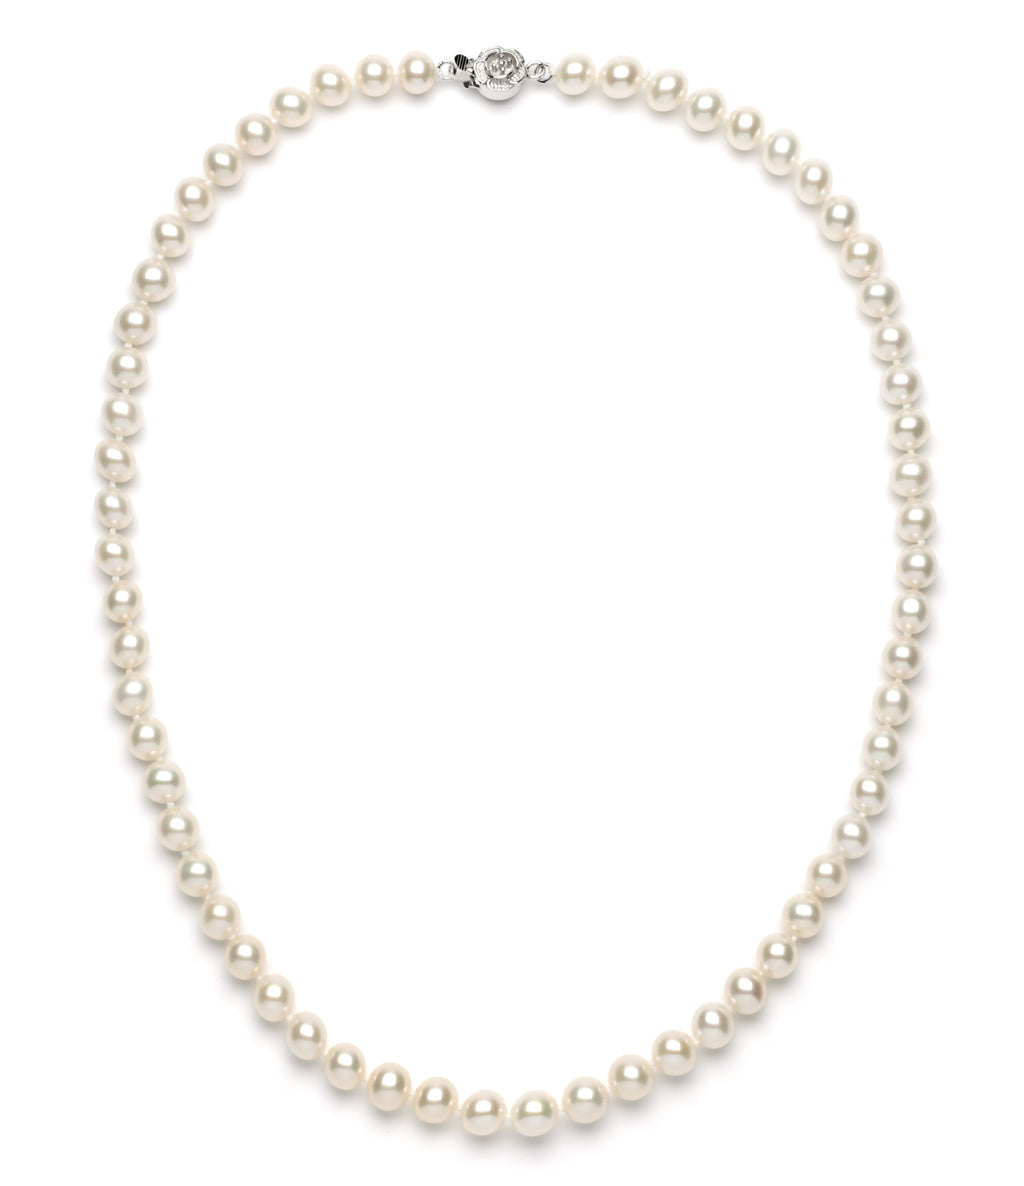 7.0-8.0 mm White Freshwater Pearl Necklace